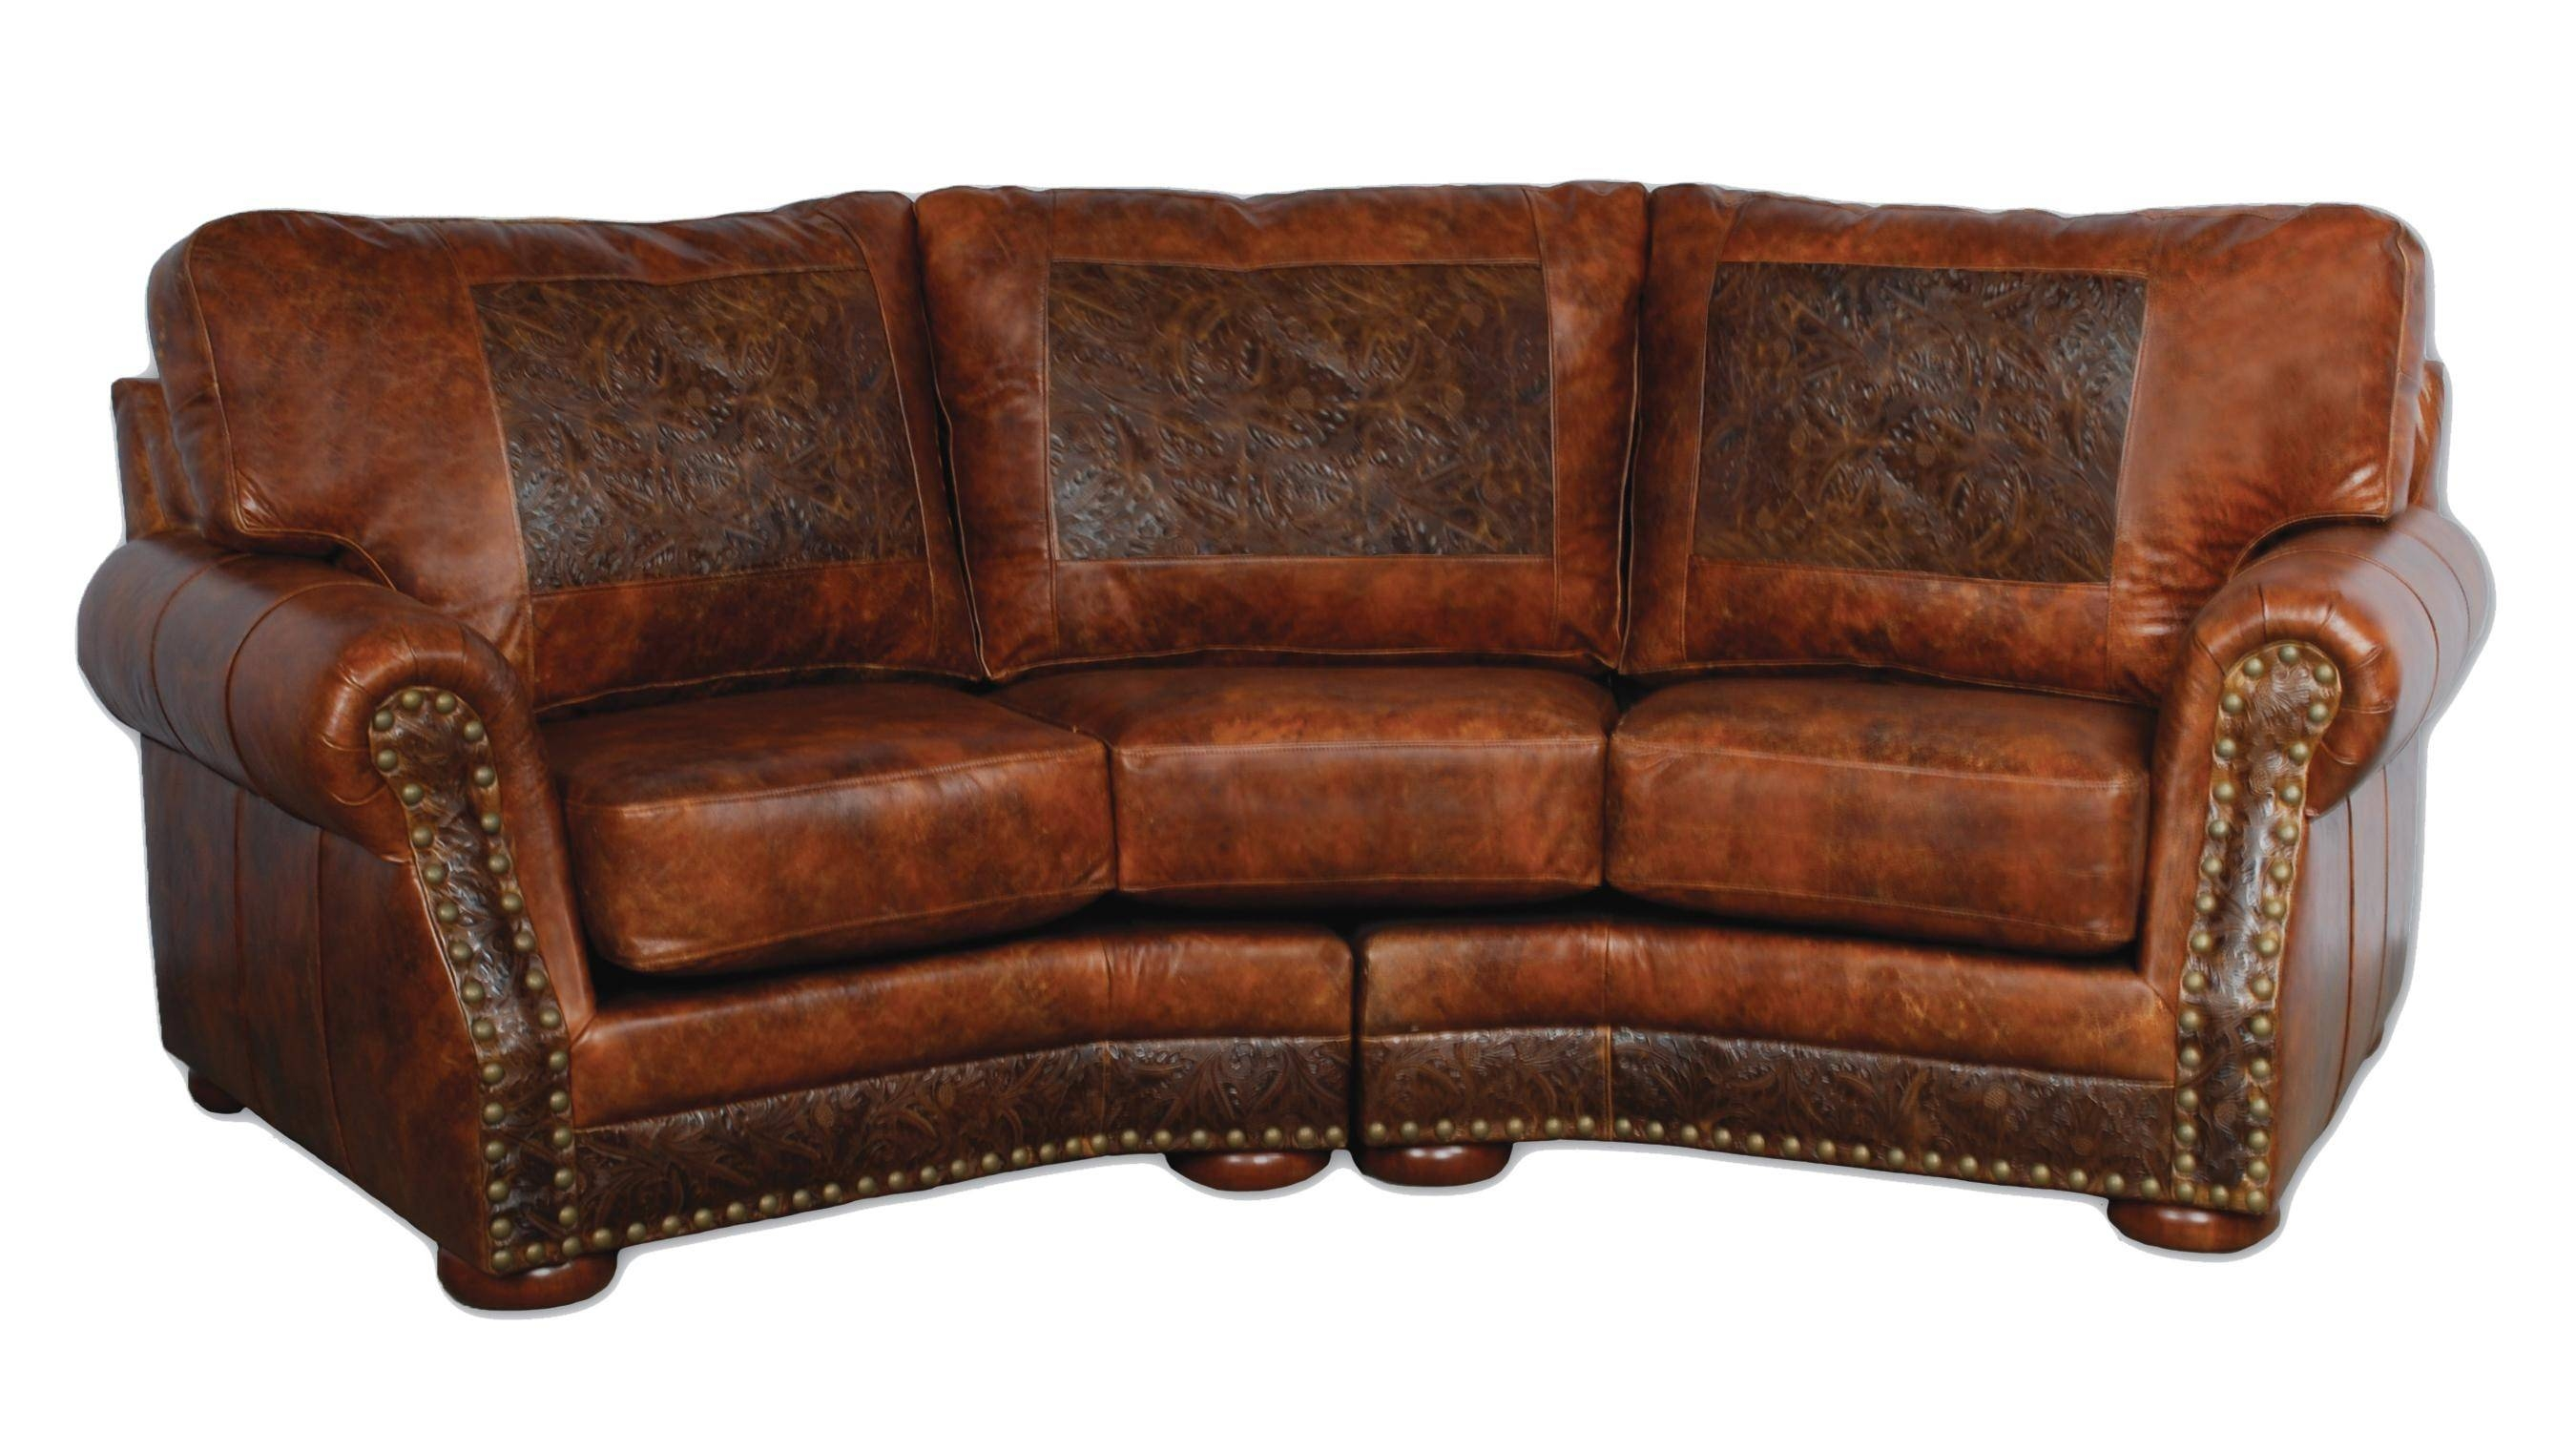 You can find it a variety of locations, but knowing exactly what you should look for is ke. The Best Full Grain Leather Sofas